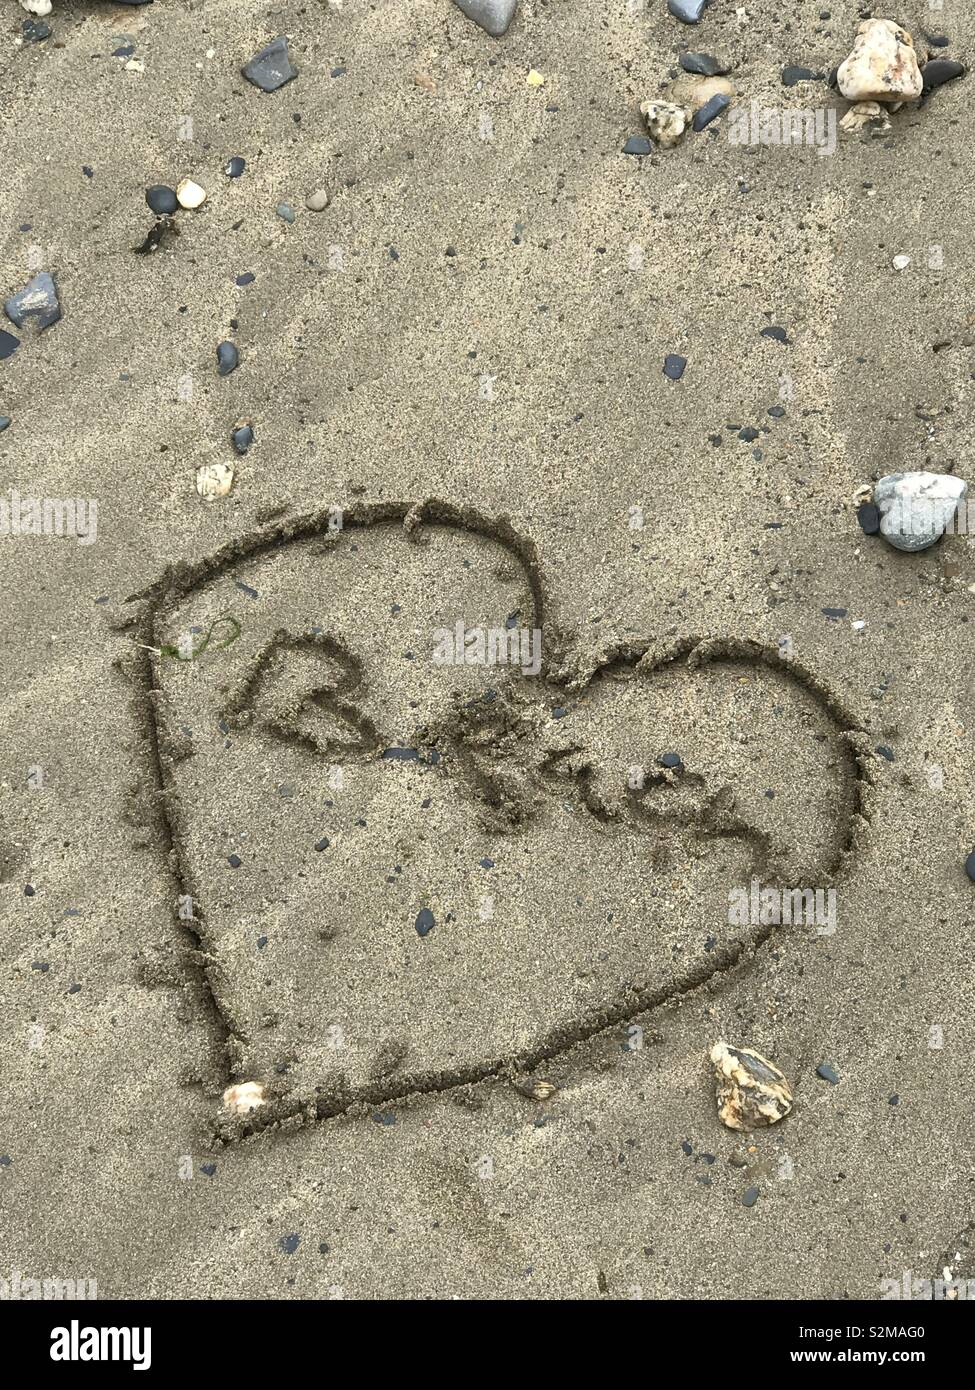 Writing in the sand on the beach - Stock Image